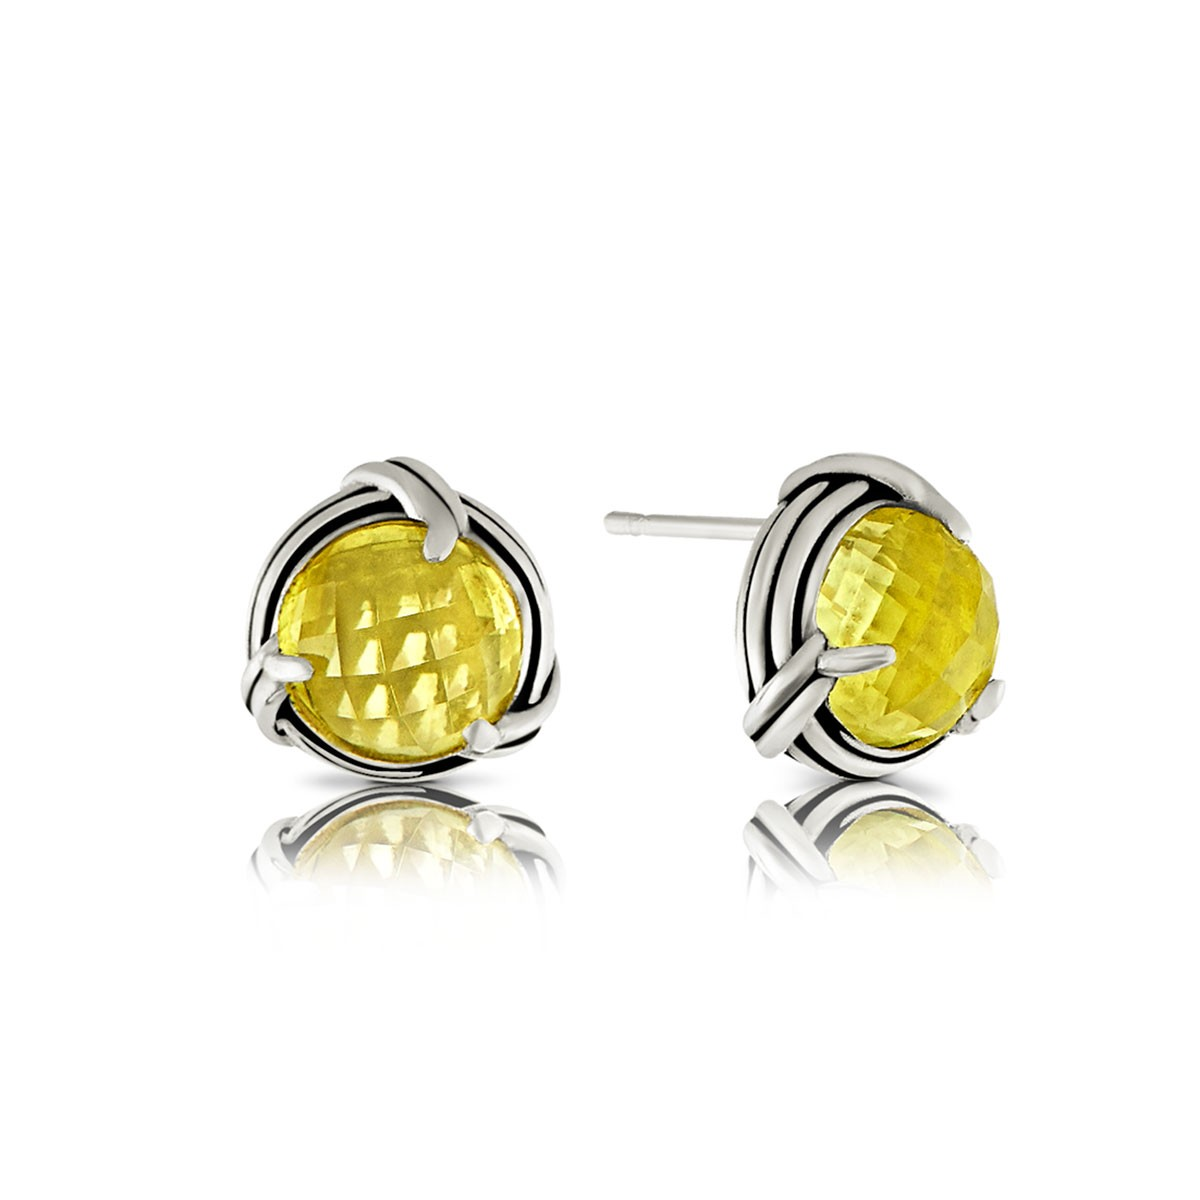 products citrine s healing stud atperry crystals product sterling image earrings bee silver